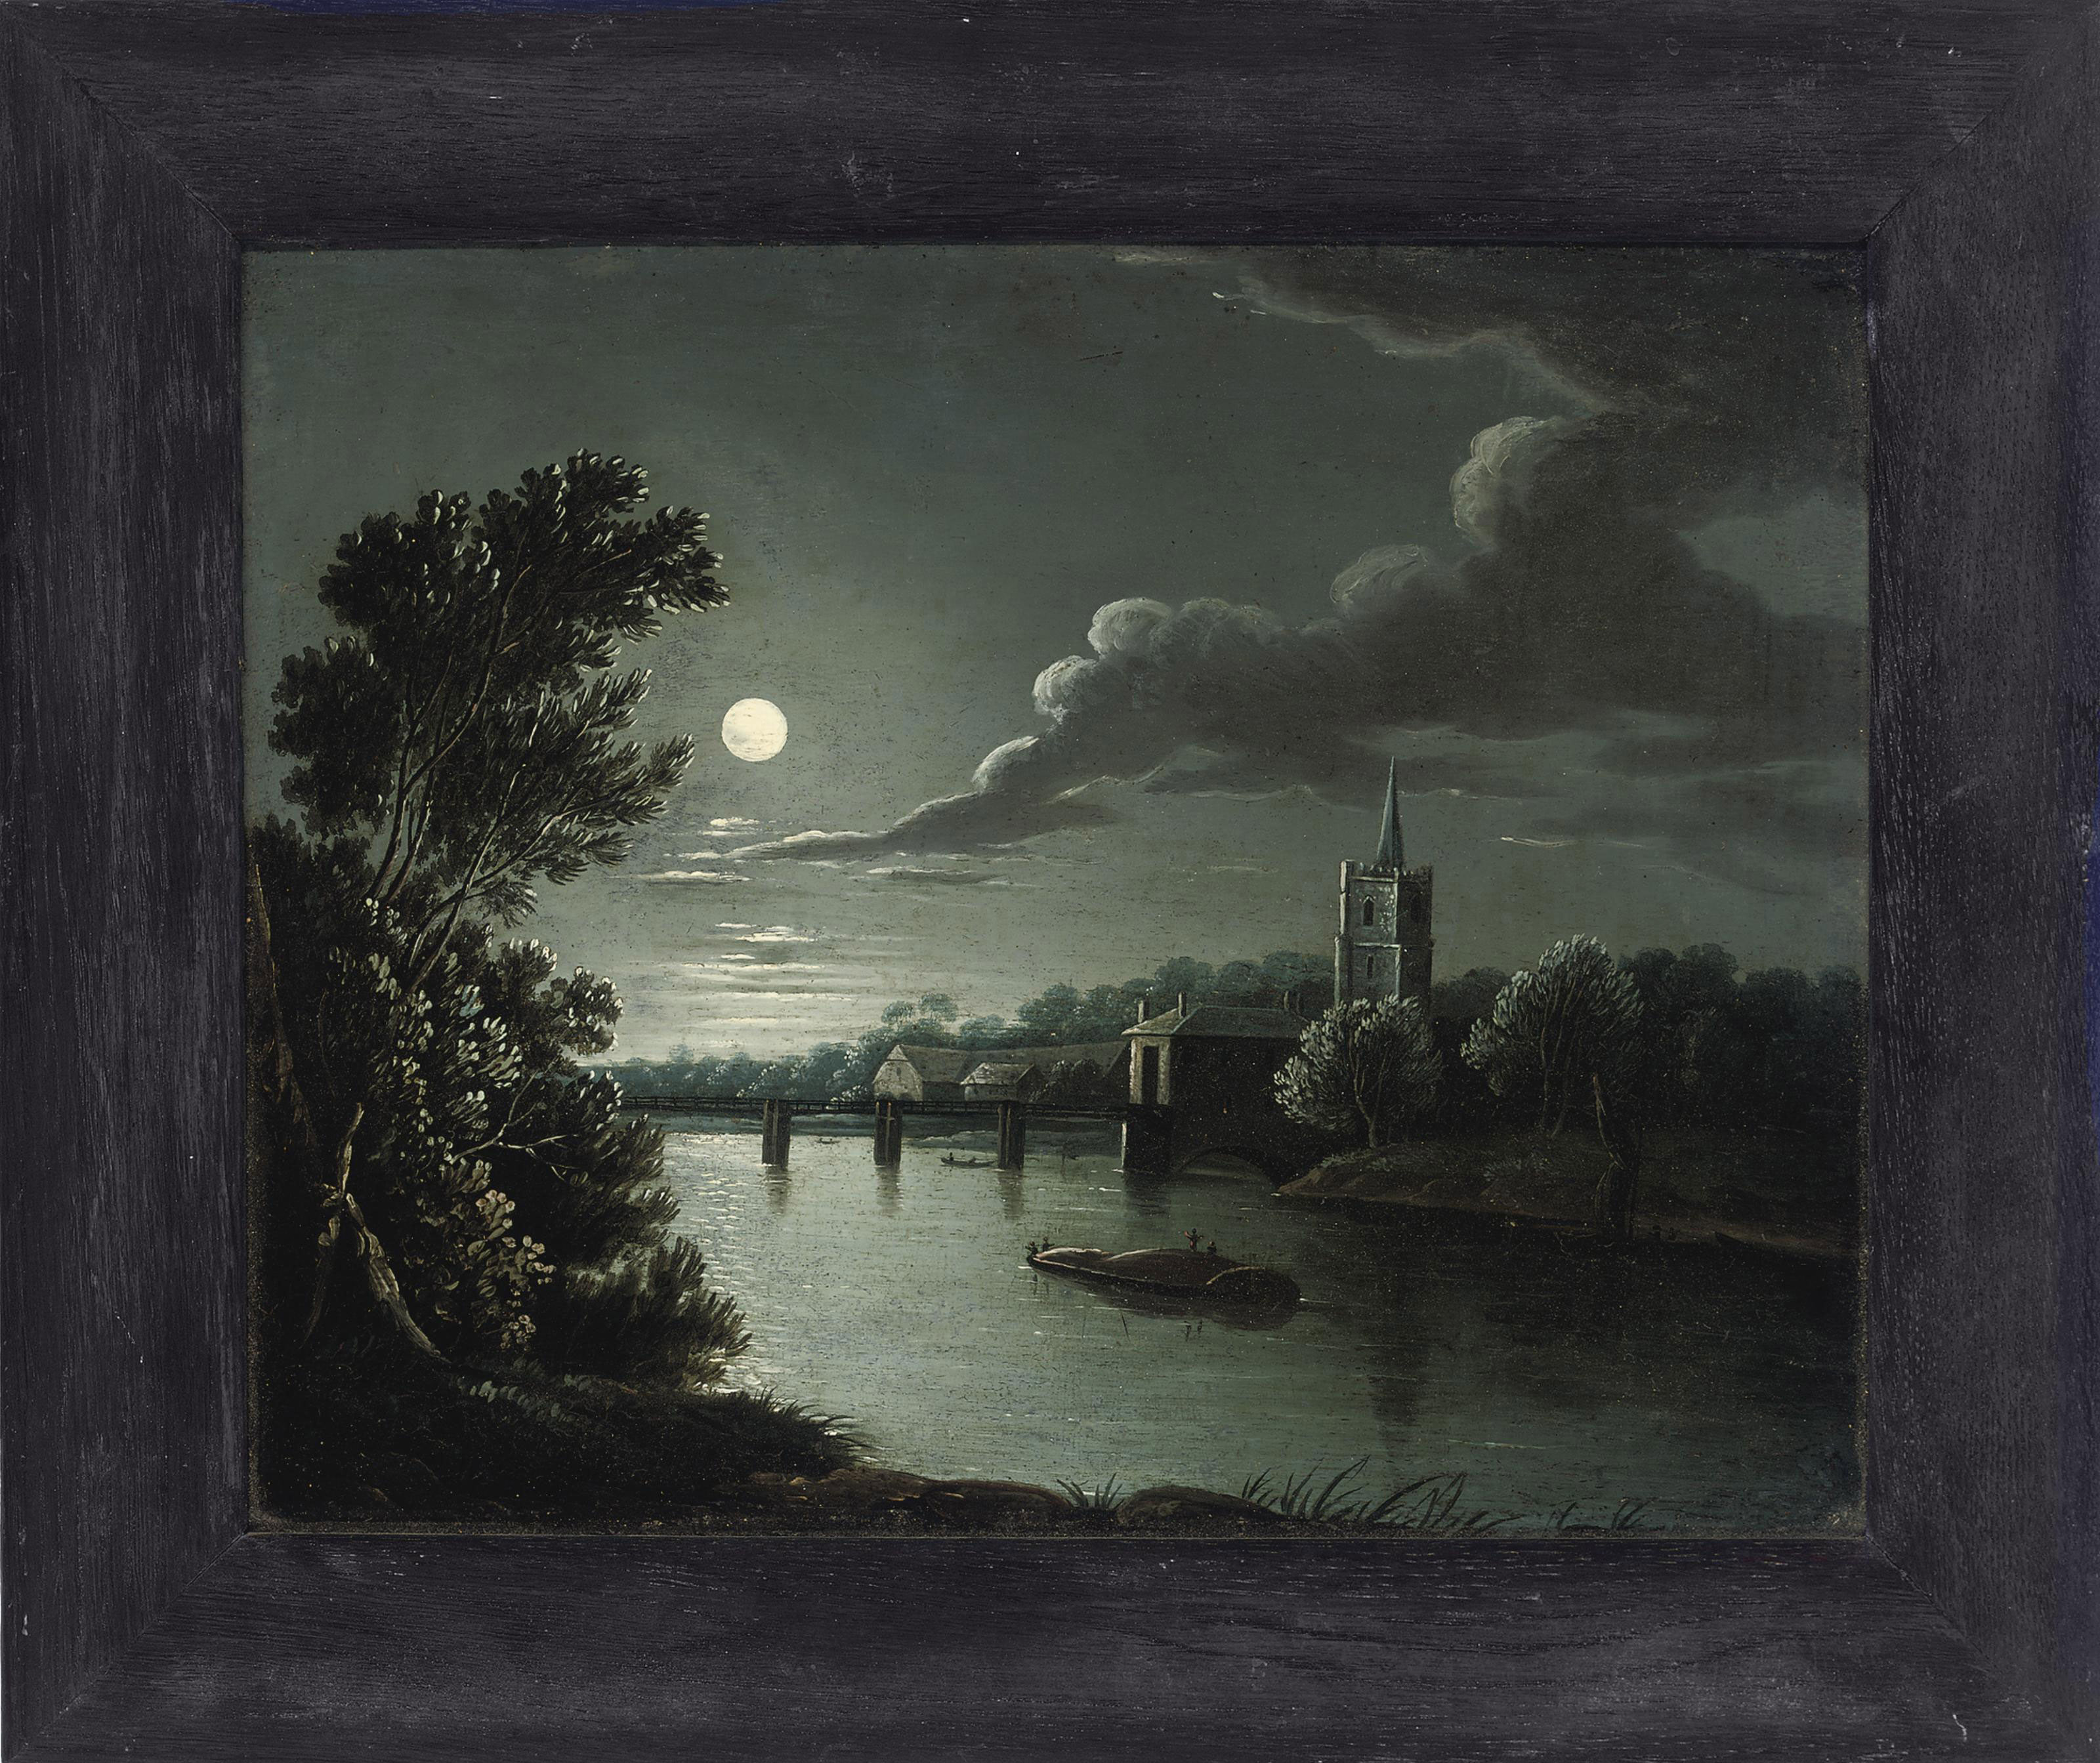 A moonlit river landscape with figures on a boat, a church beyond